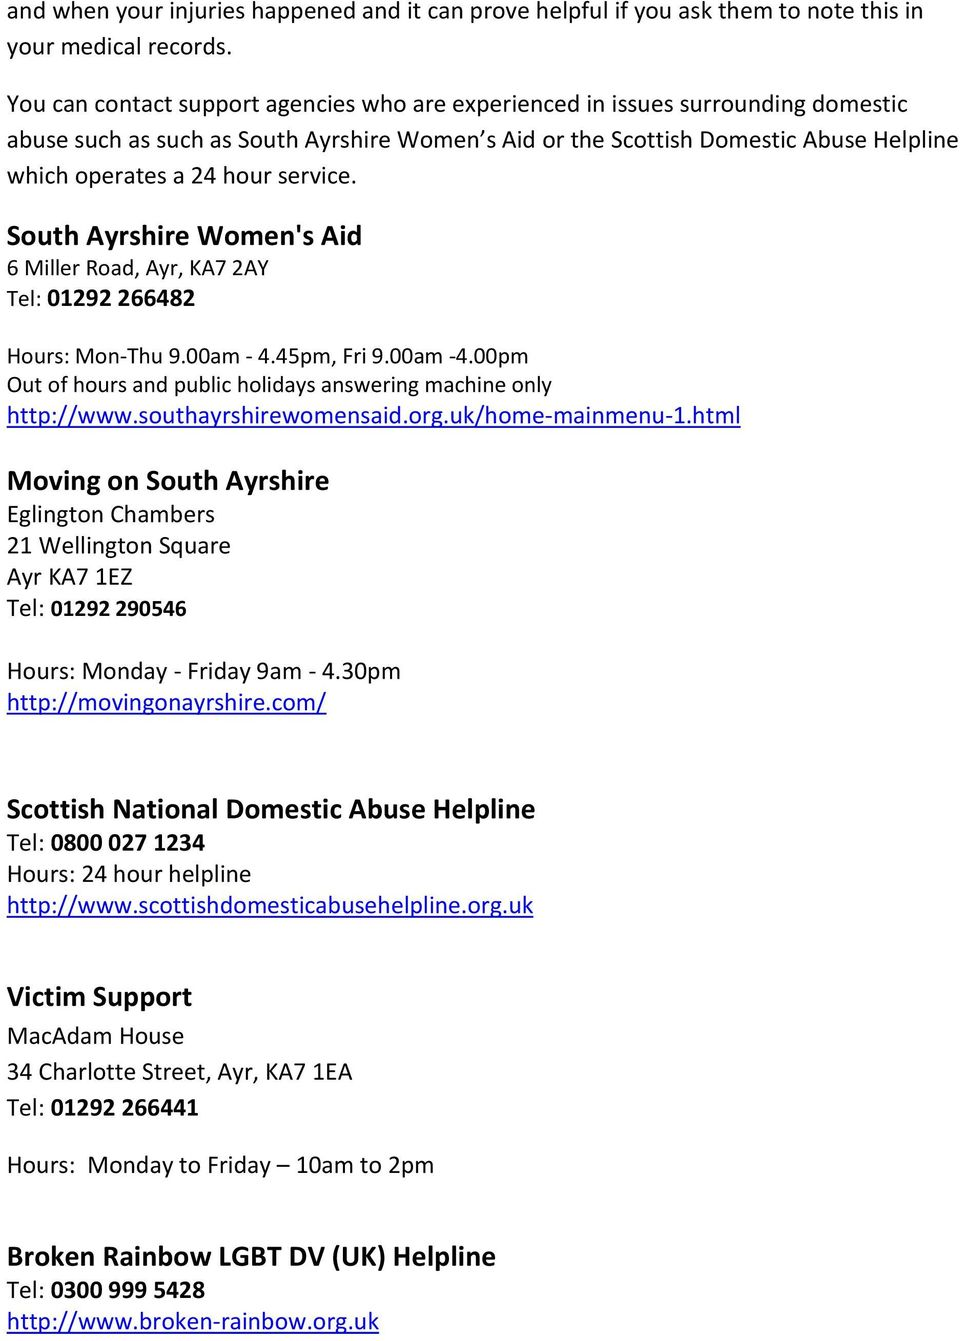 service. South Ayrshire Women's Aid 6 Miller Road, Ayr, KA7 2AY Tel: 01292 266482 Hours: Mon-Thu 9.00am - 4.45pm, Fri 9.00am -4.00pm Out of hours and public holidays answering machine only http://www.